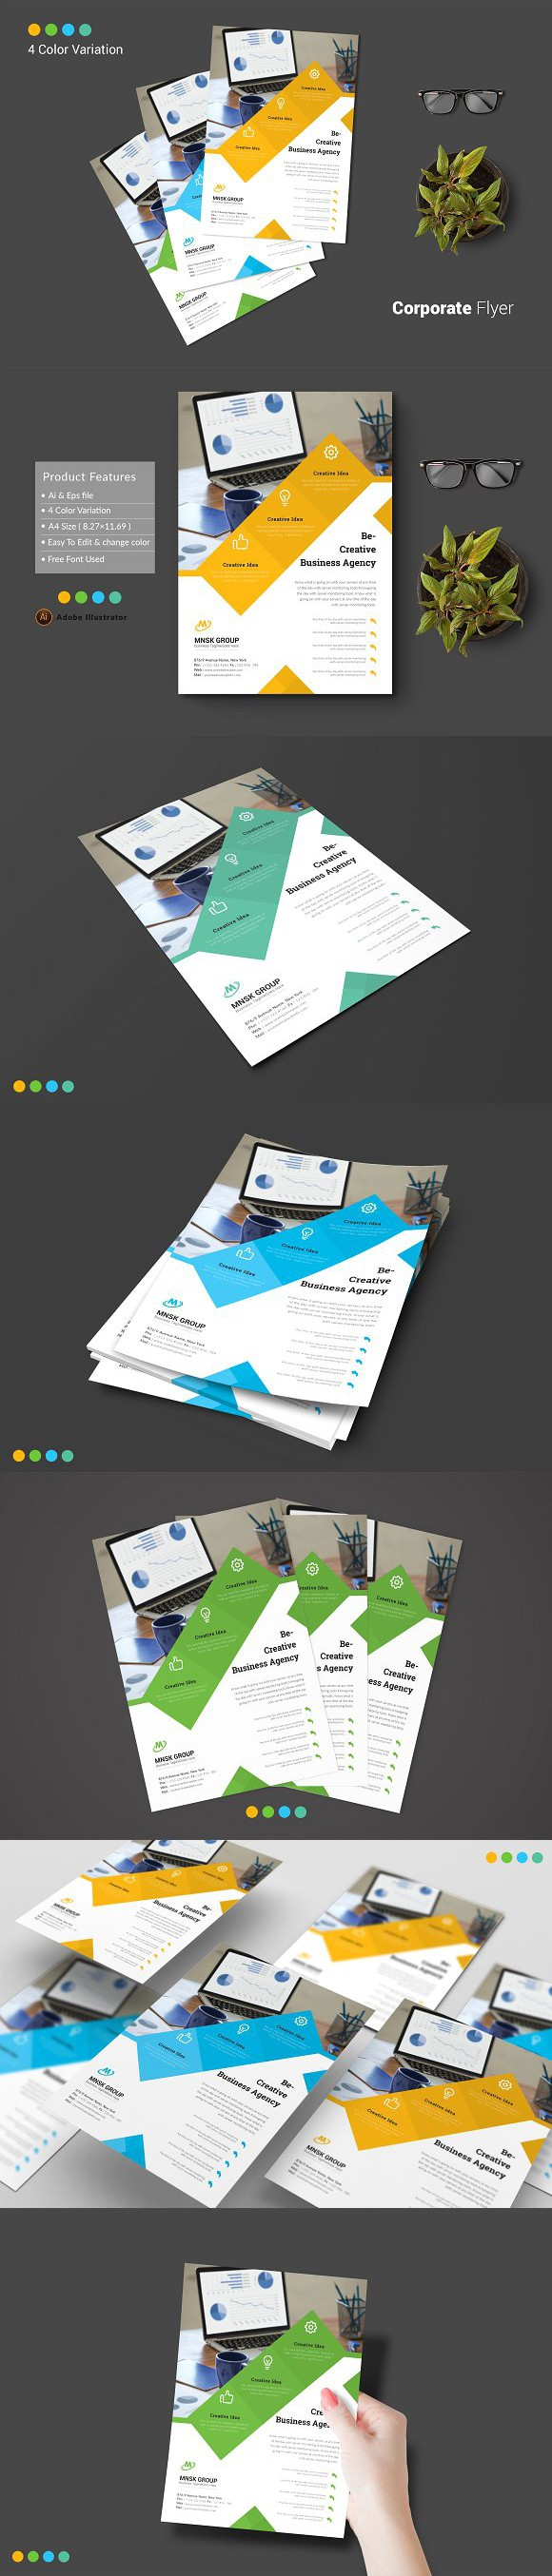 Flyer Powerpoint Templates Powerpoint Templates Pinterest